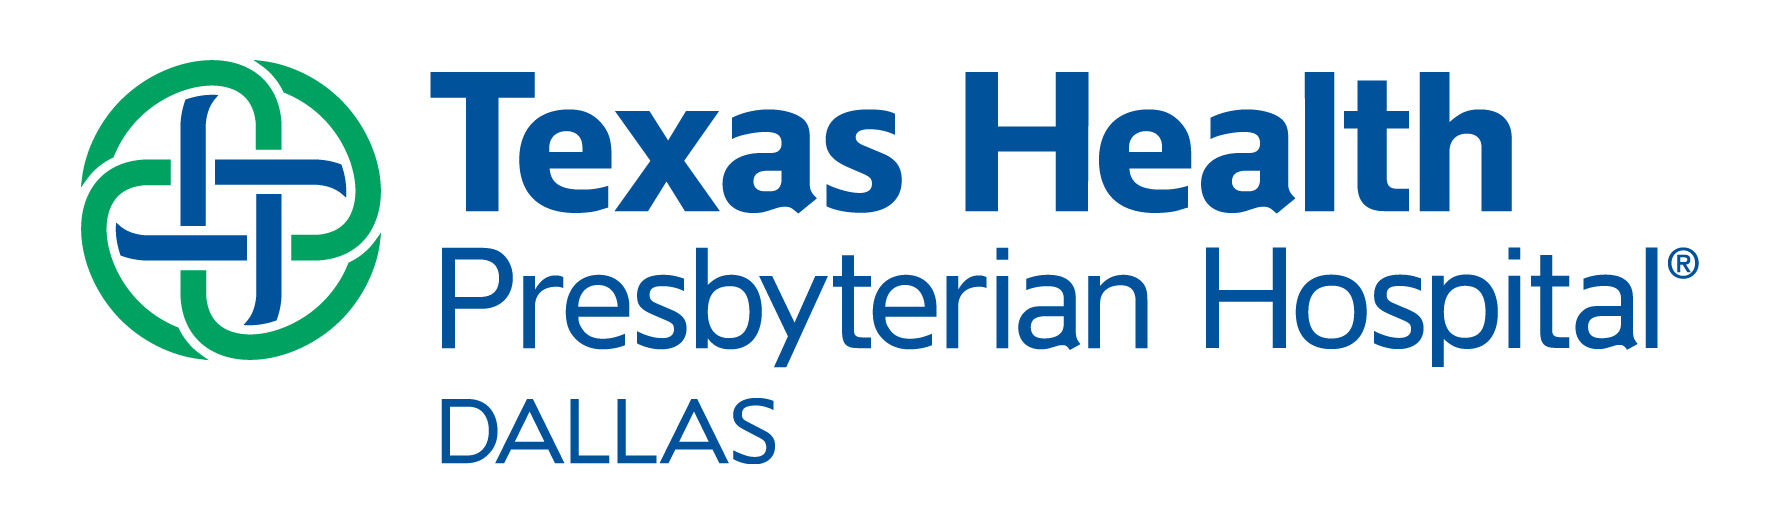 3 Texas Health Dallas  (Gold)